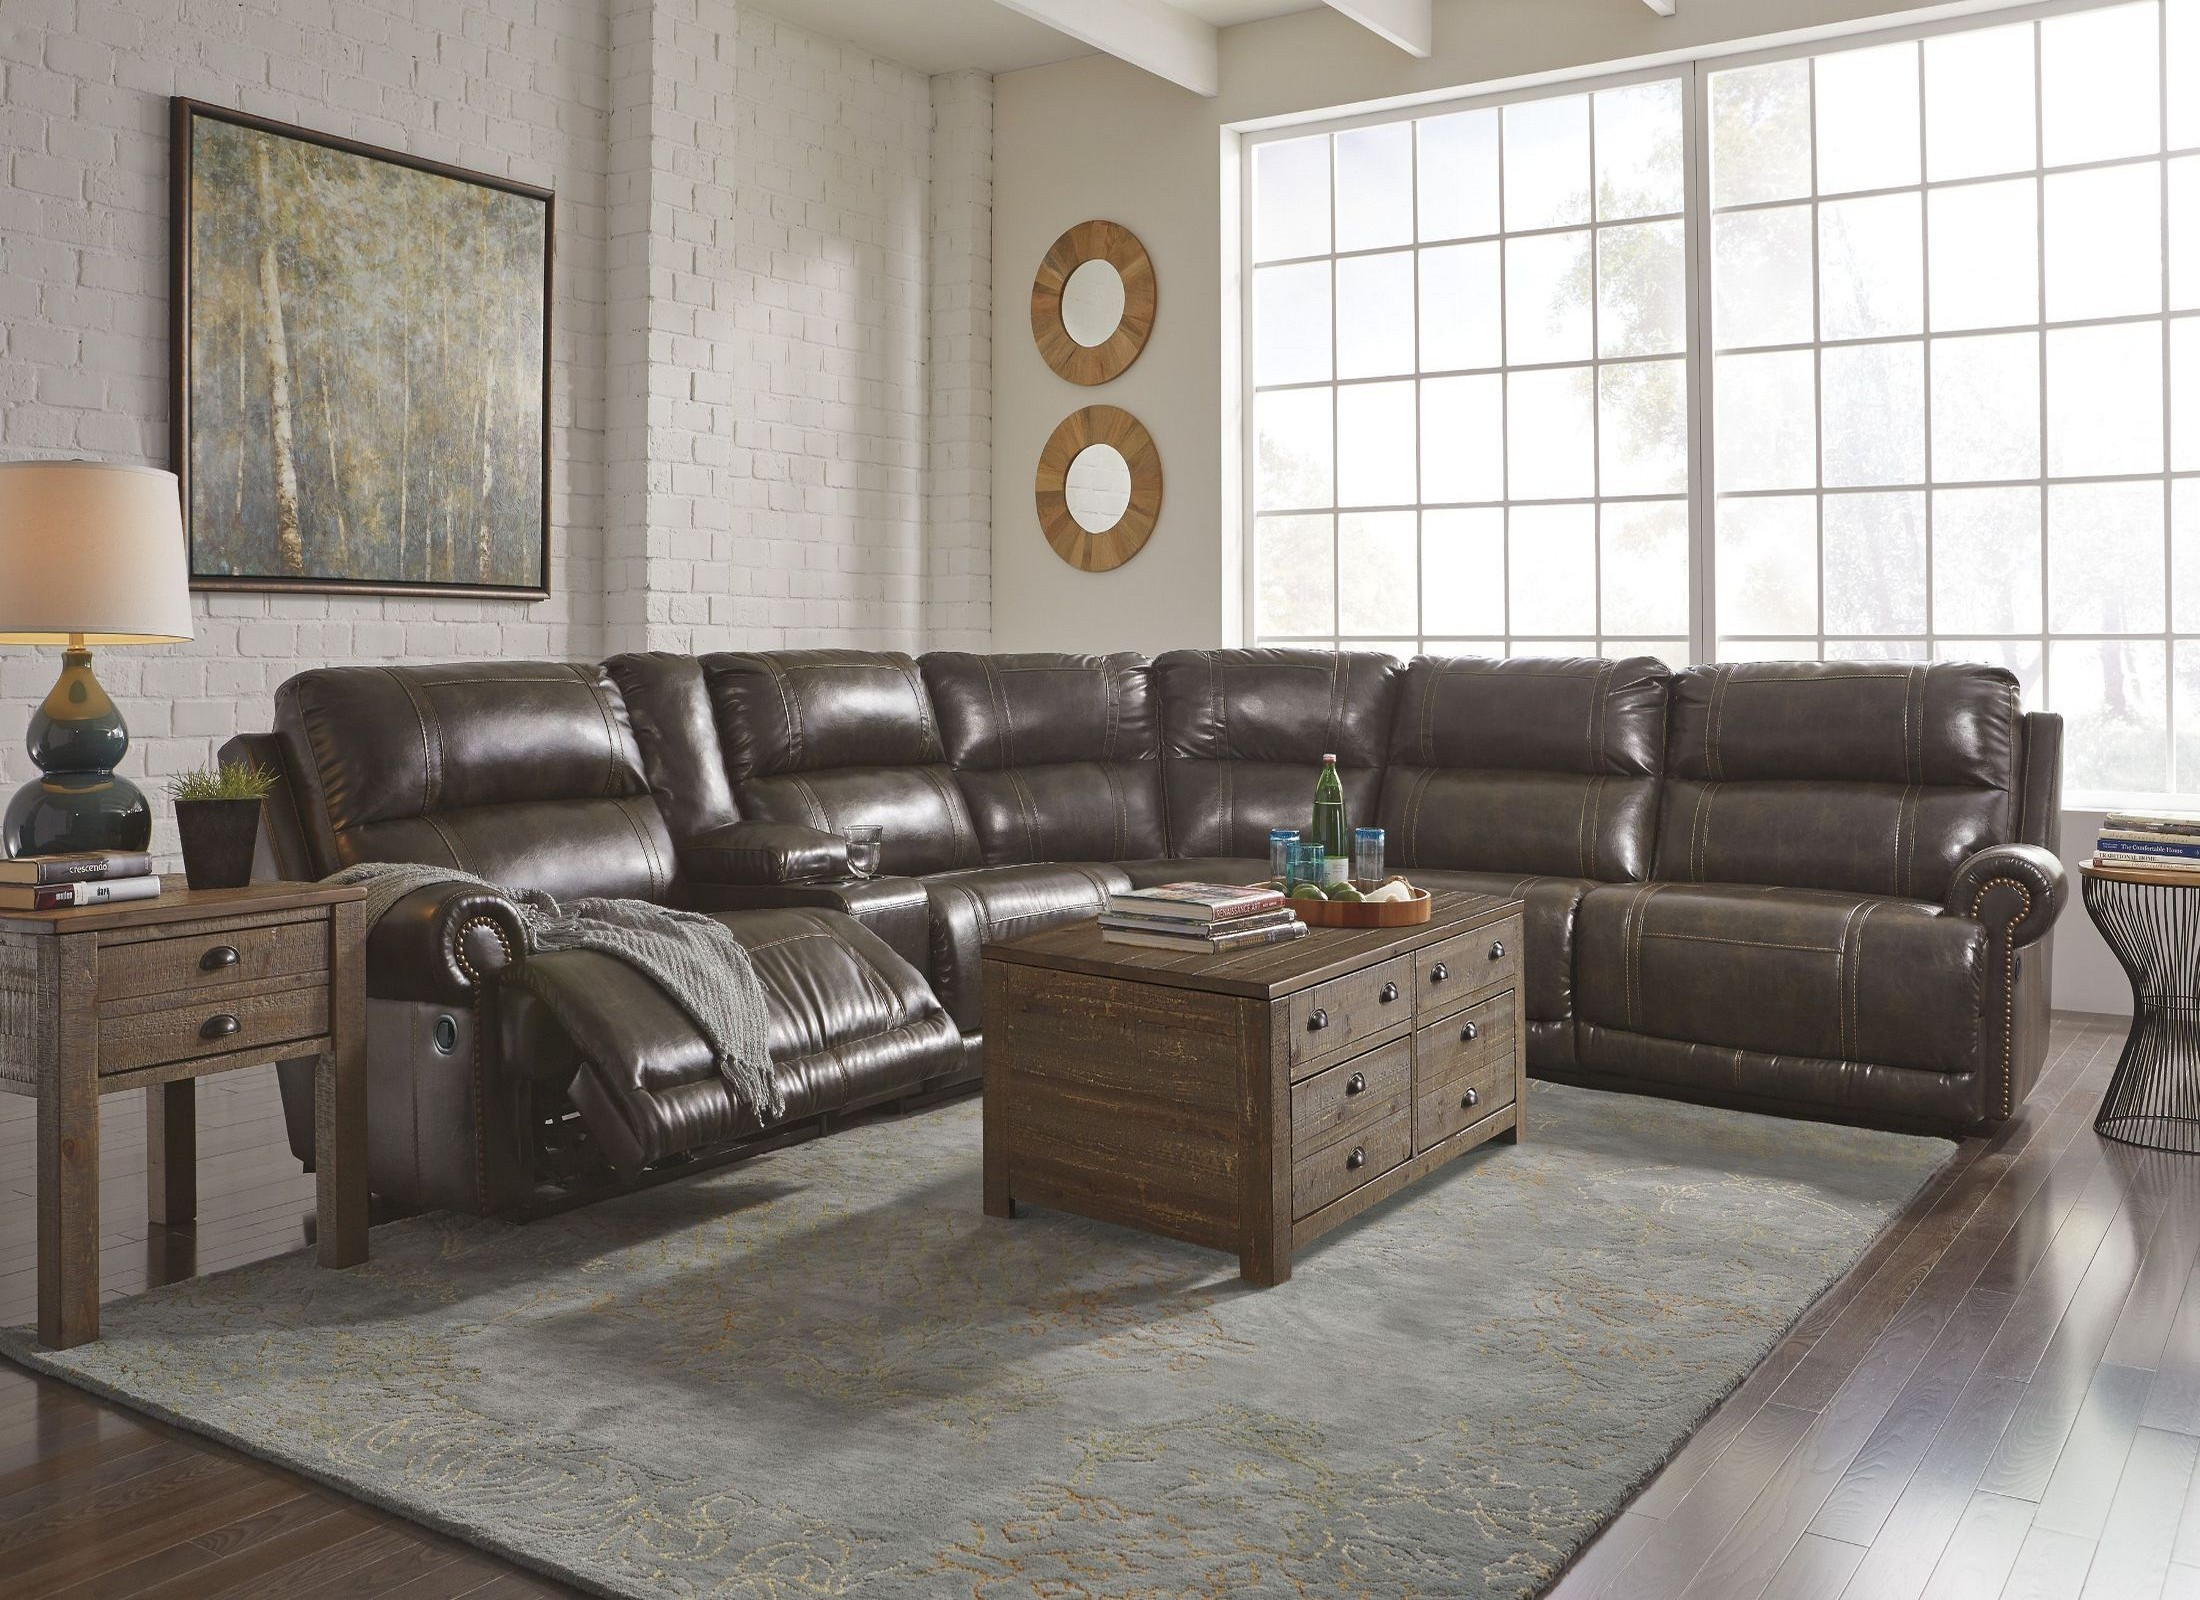 2298100 : durablend antique sectional - Sectionals, Sofas & Couches